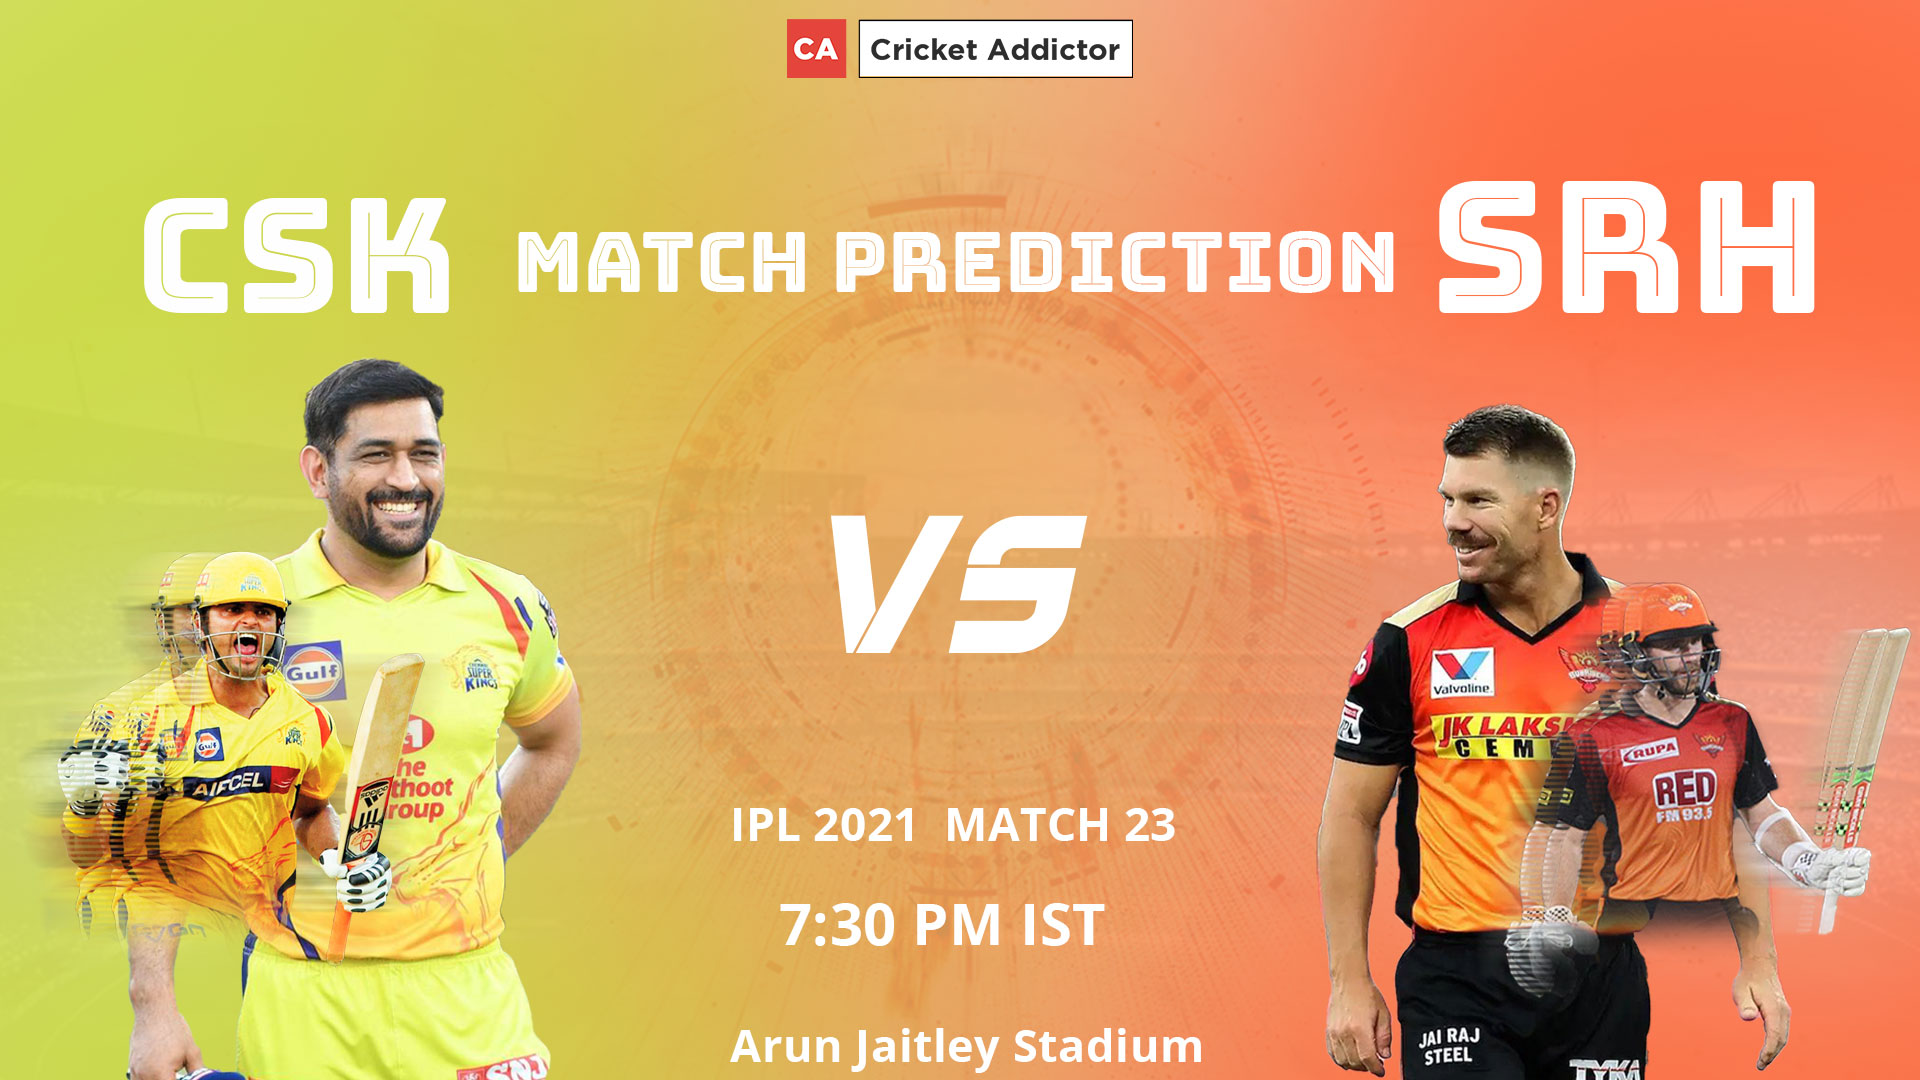 IPL 2021, CSK vs SRH, Match Prediction, CSK, SRH, Who Will Win The Match, Who Will Score Most Runs, Who Will Pick Most Wickets